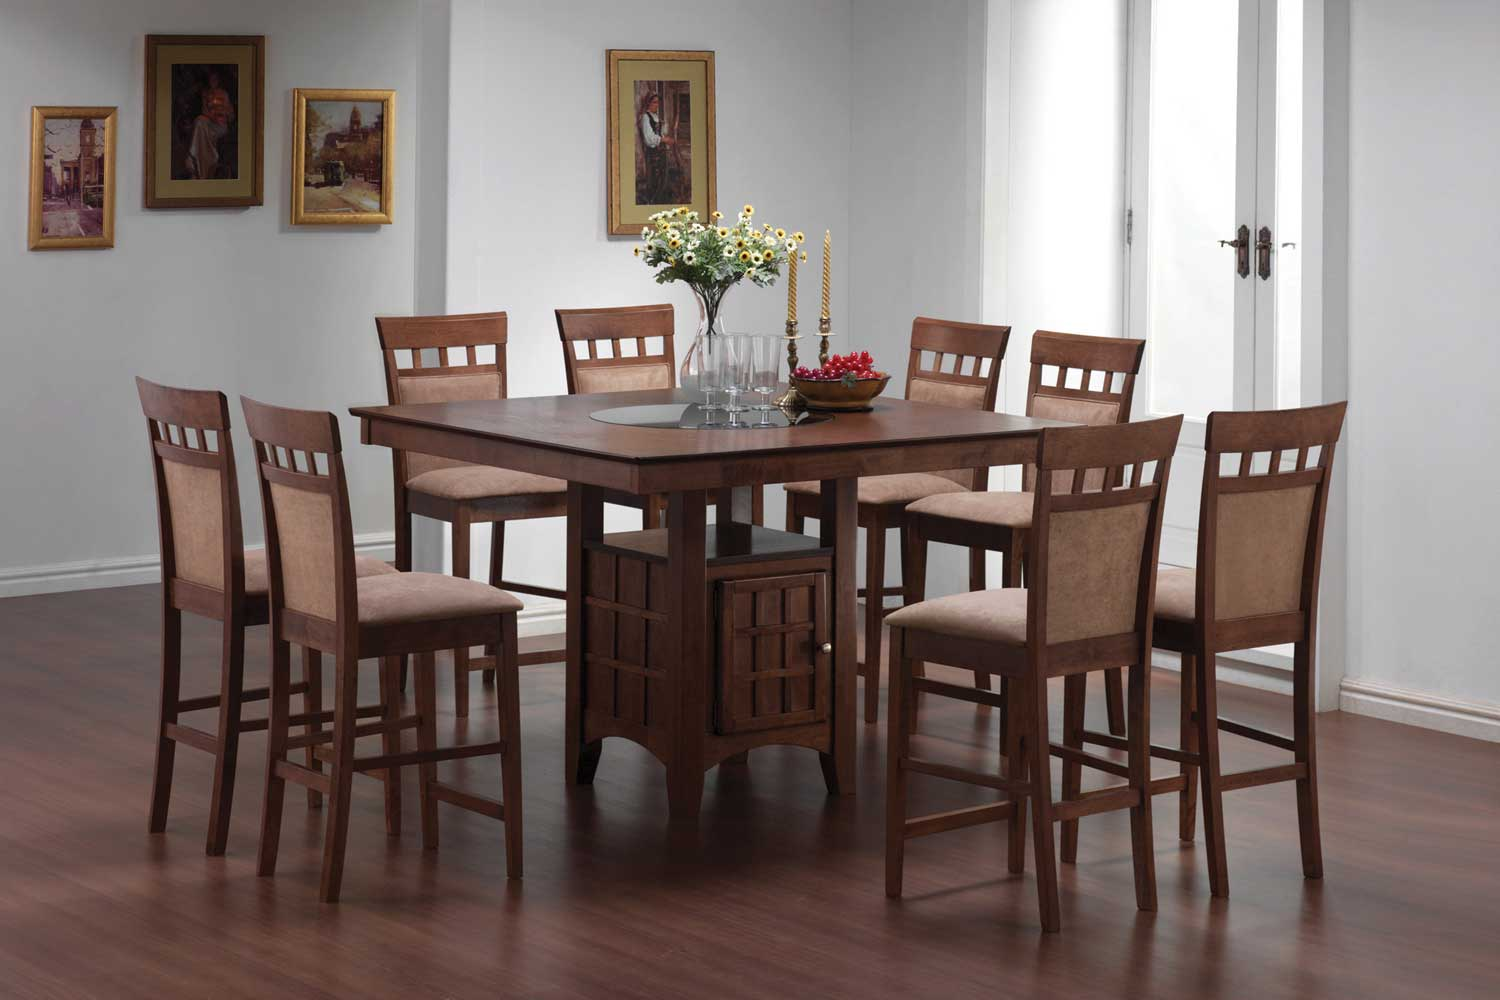 Coaster Mix and Match Counter Height Dining Table Set with  : CO 101438 101219 from www.homelement.com size 1500 x 1000 jpeg 85kB